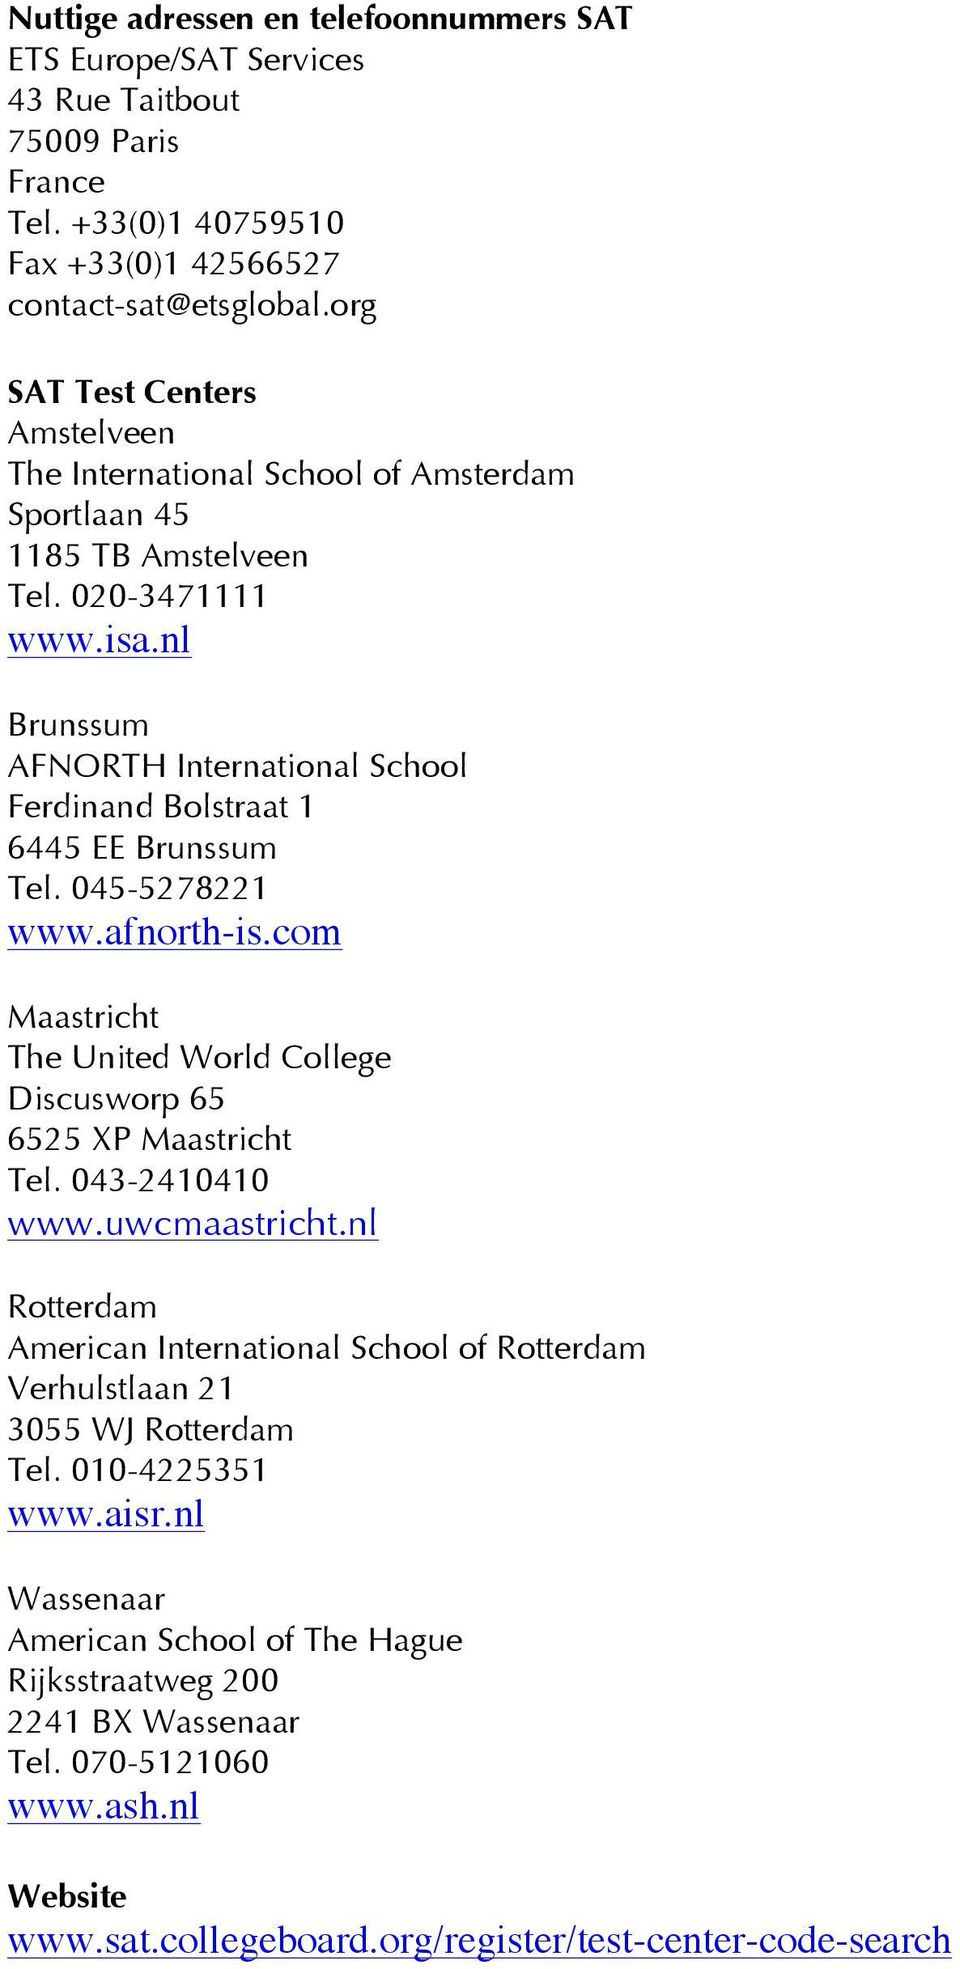 nl Brunssum AFNORTH International School Ferdinand Bolstraat 1 6445 EE Brunssum Tel. 045-5278221 www.afnorth-is.com Maastricht The United World College Discusworp 65 6525 XP Maastricht Tel.